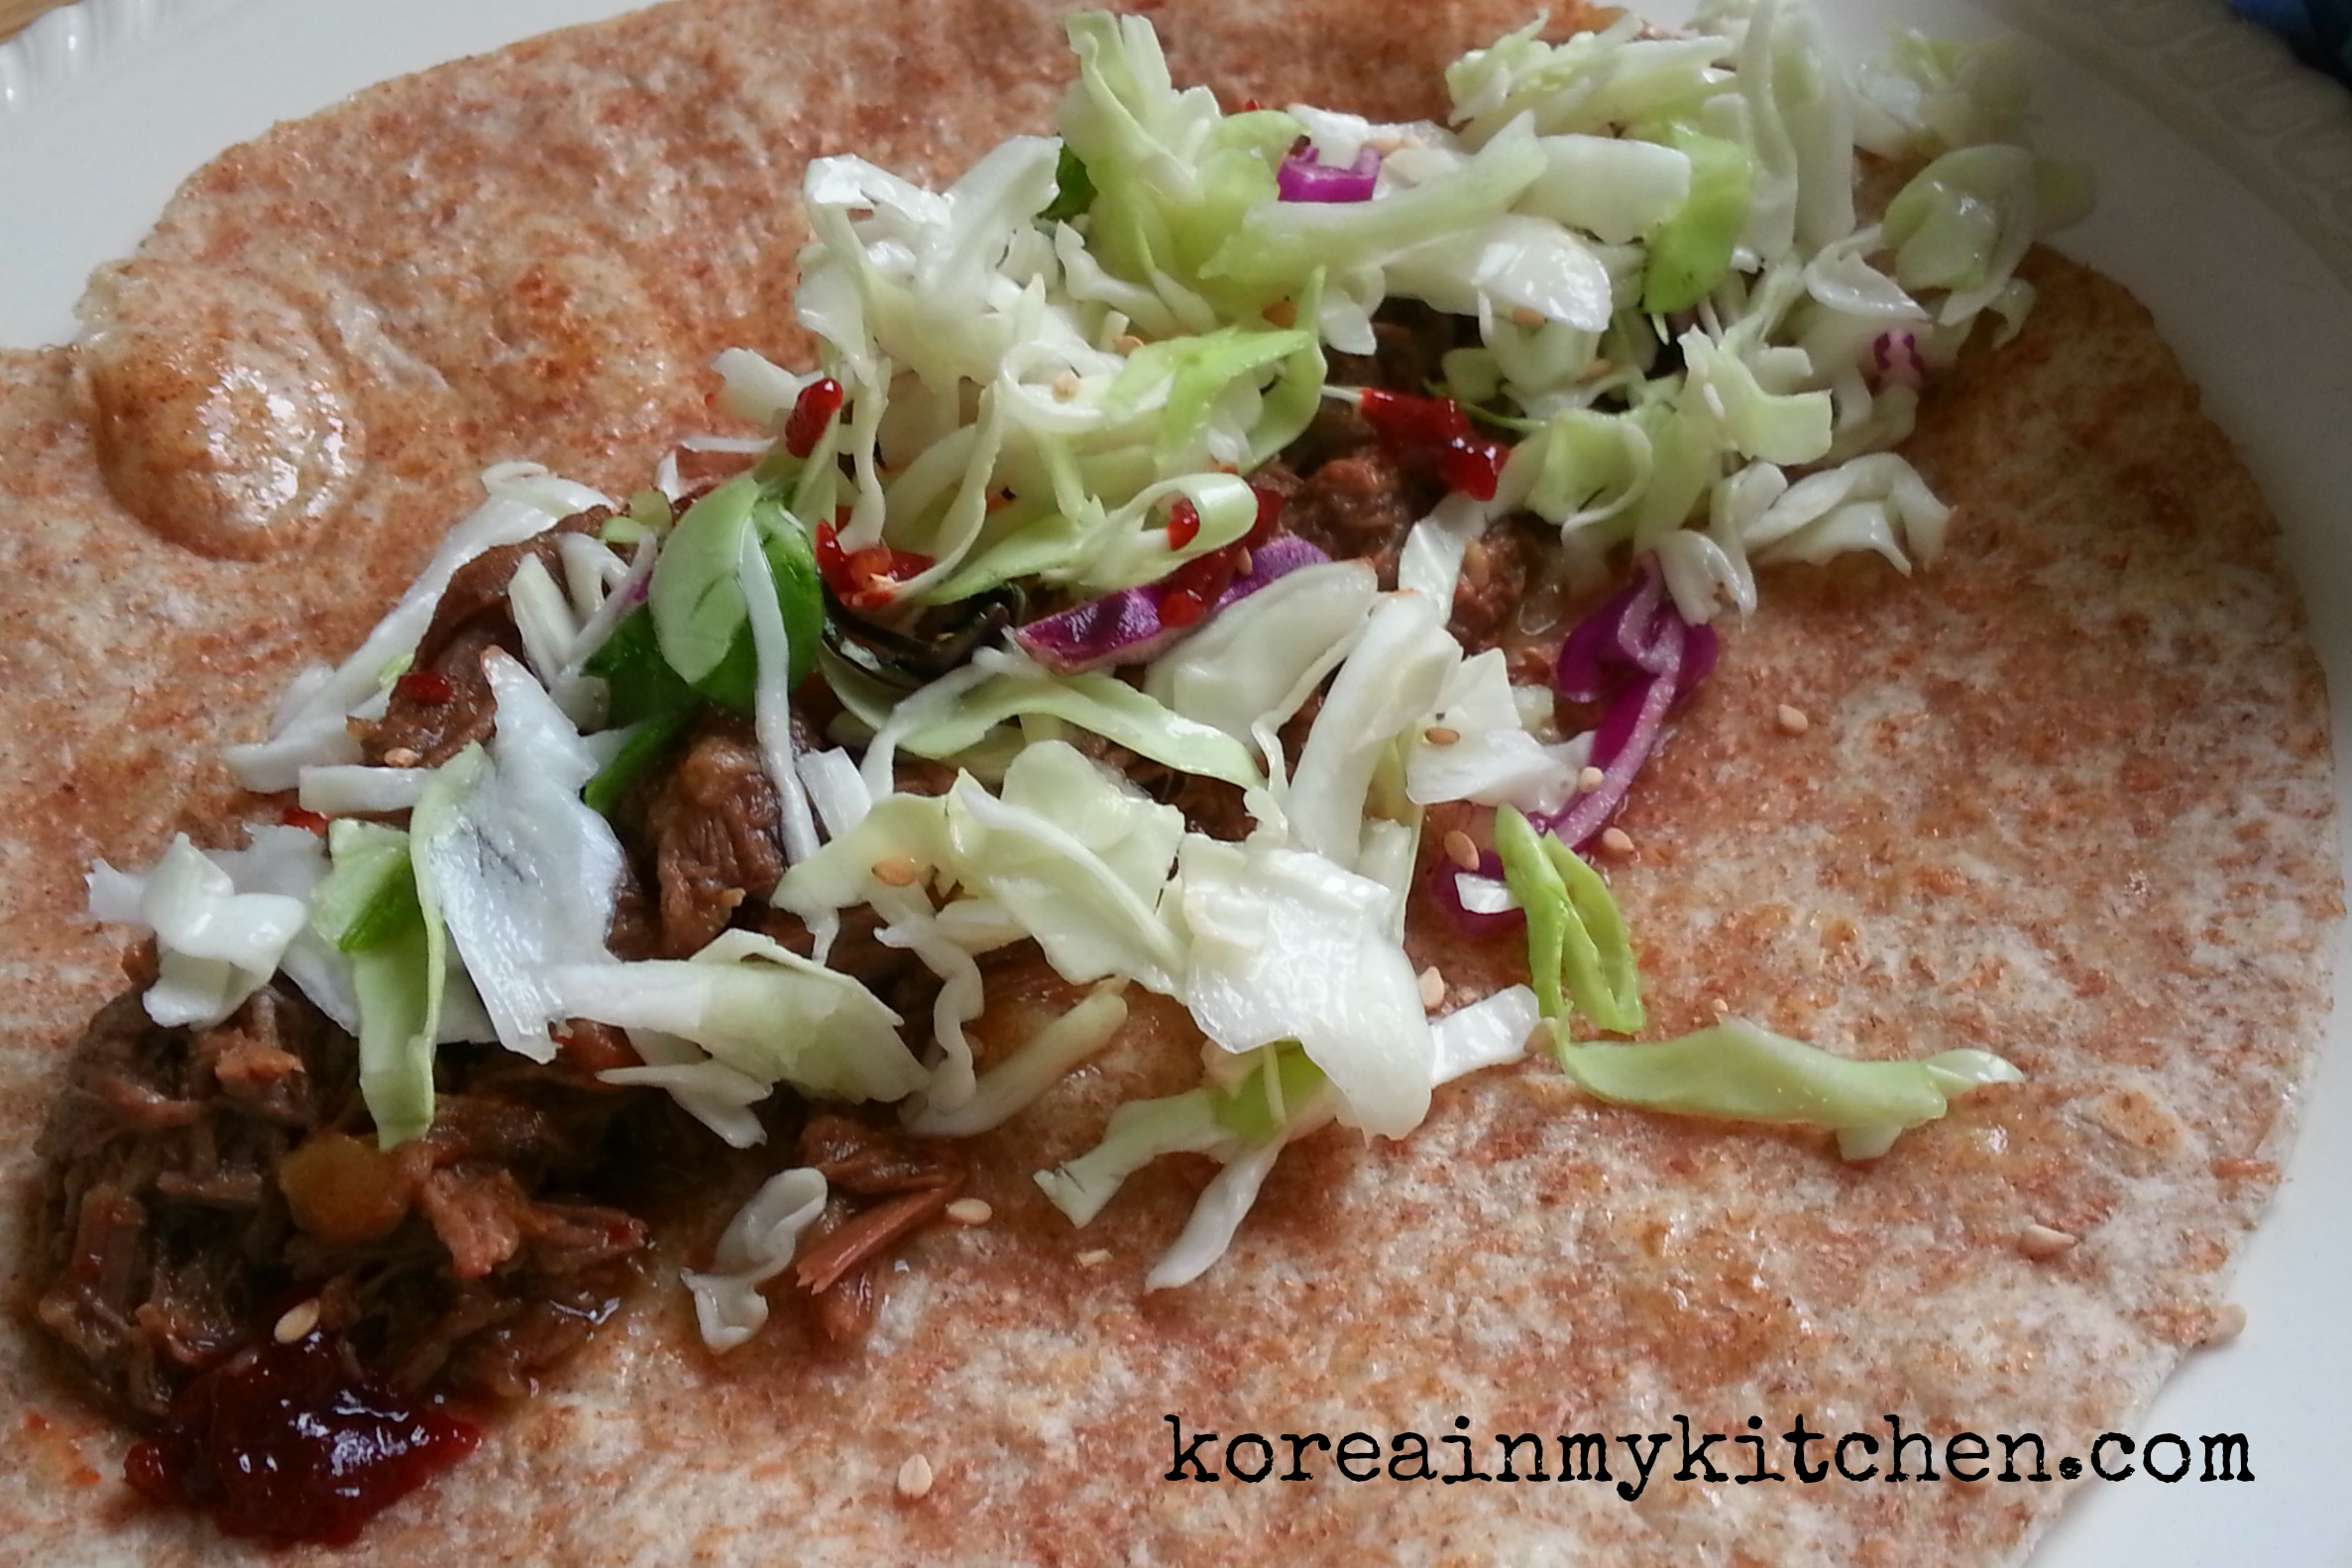 Shredded Korean beef tacos with cabbage slaw